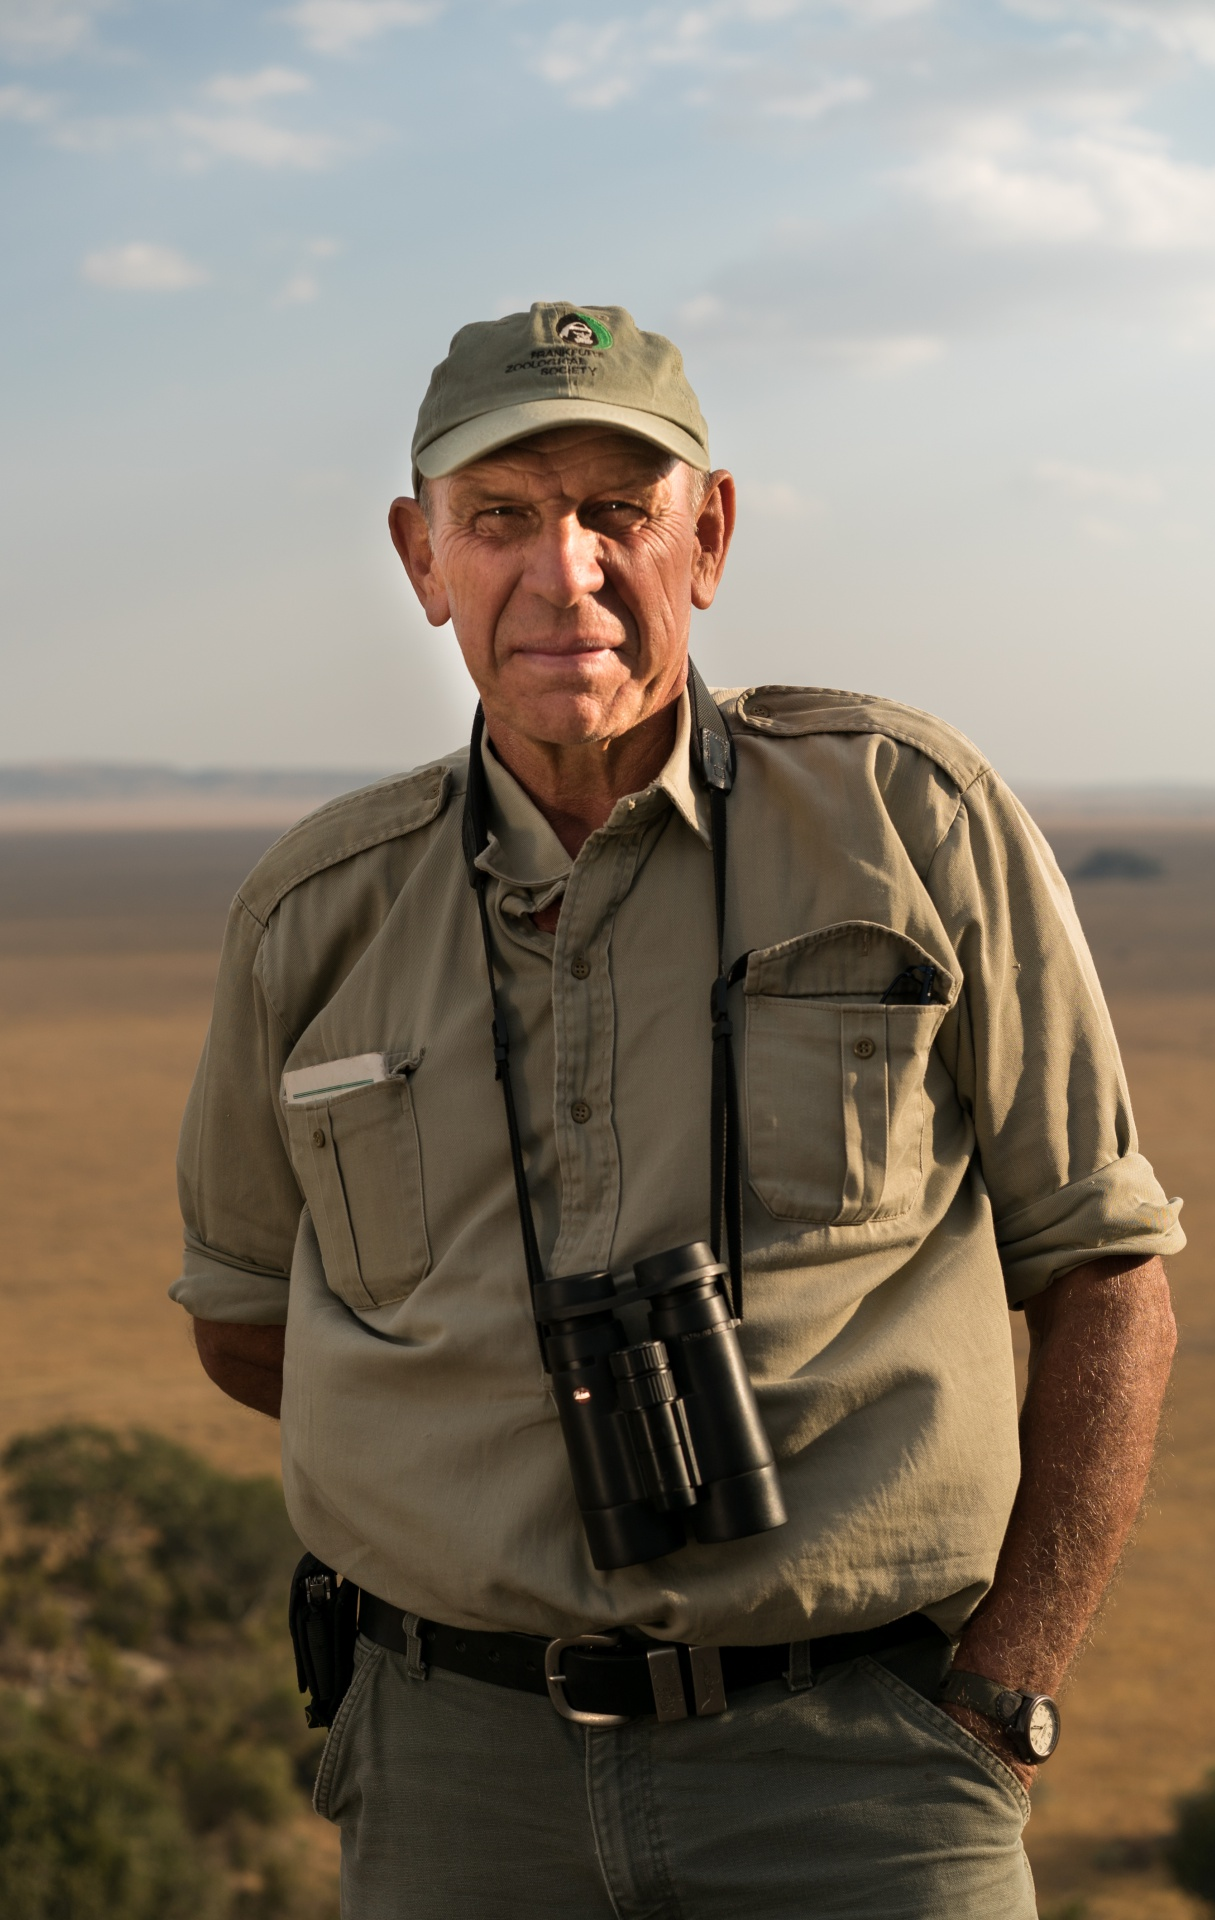 Rian Labuschagne | 2017 Prince William Award for Conservation in Africa, Winner